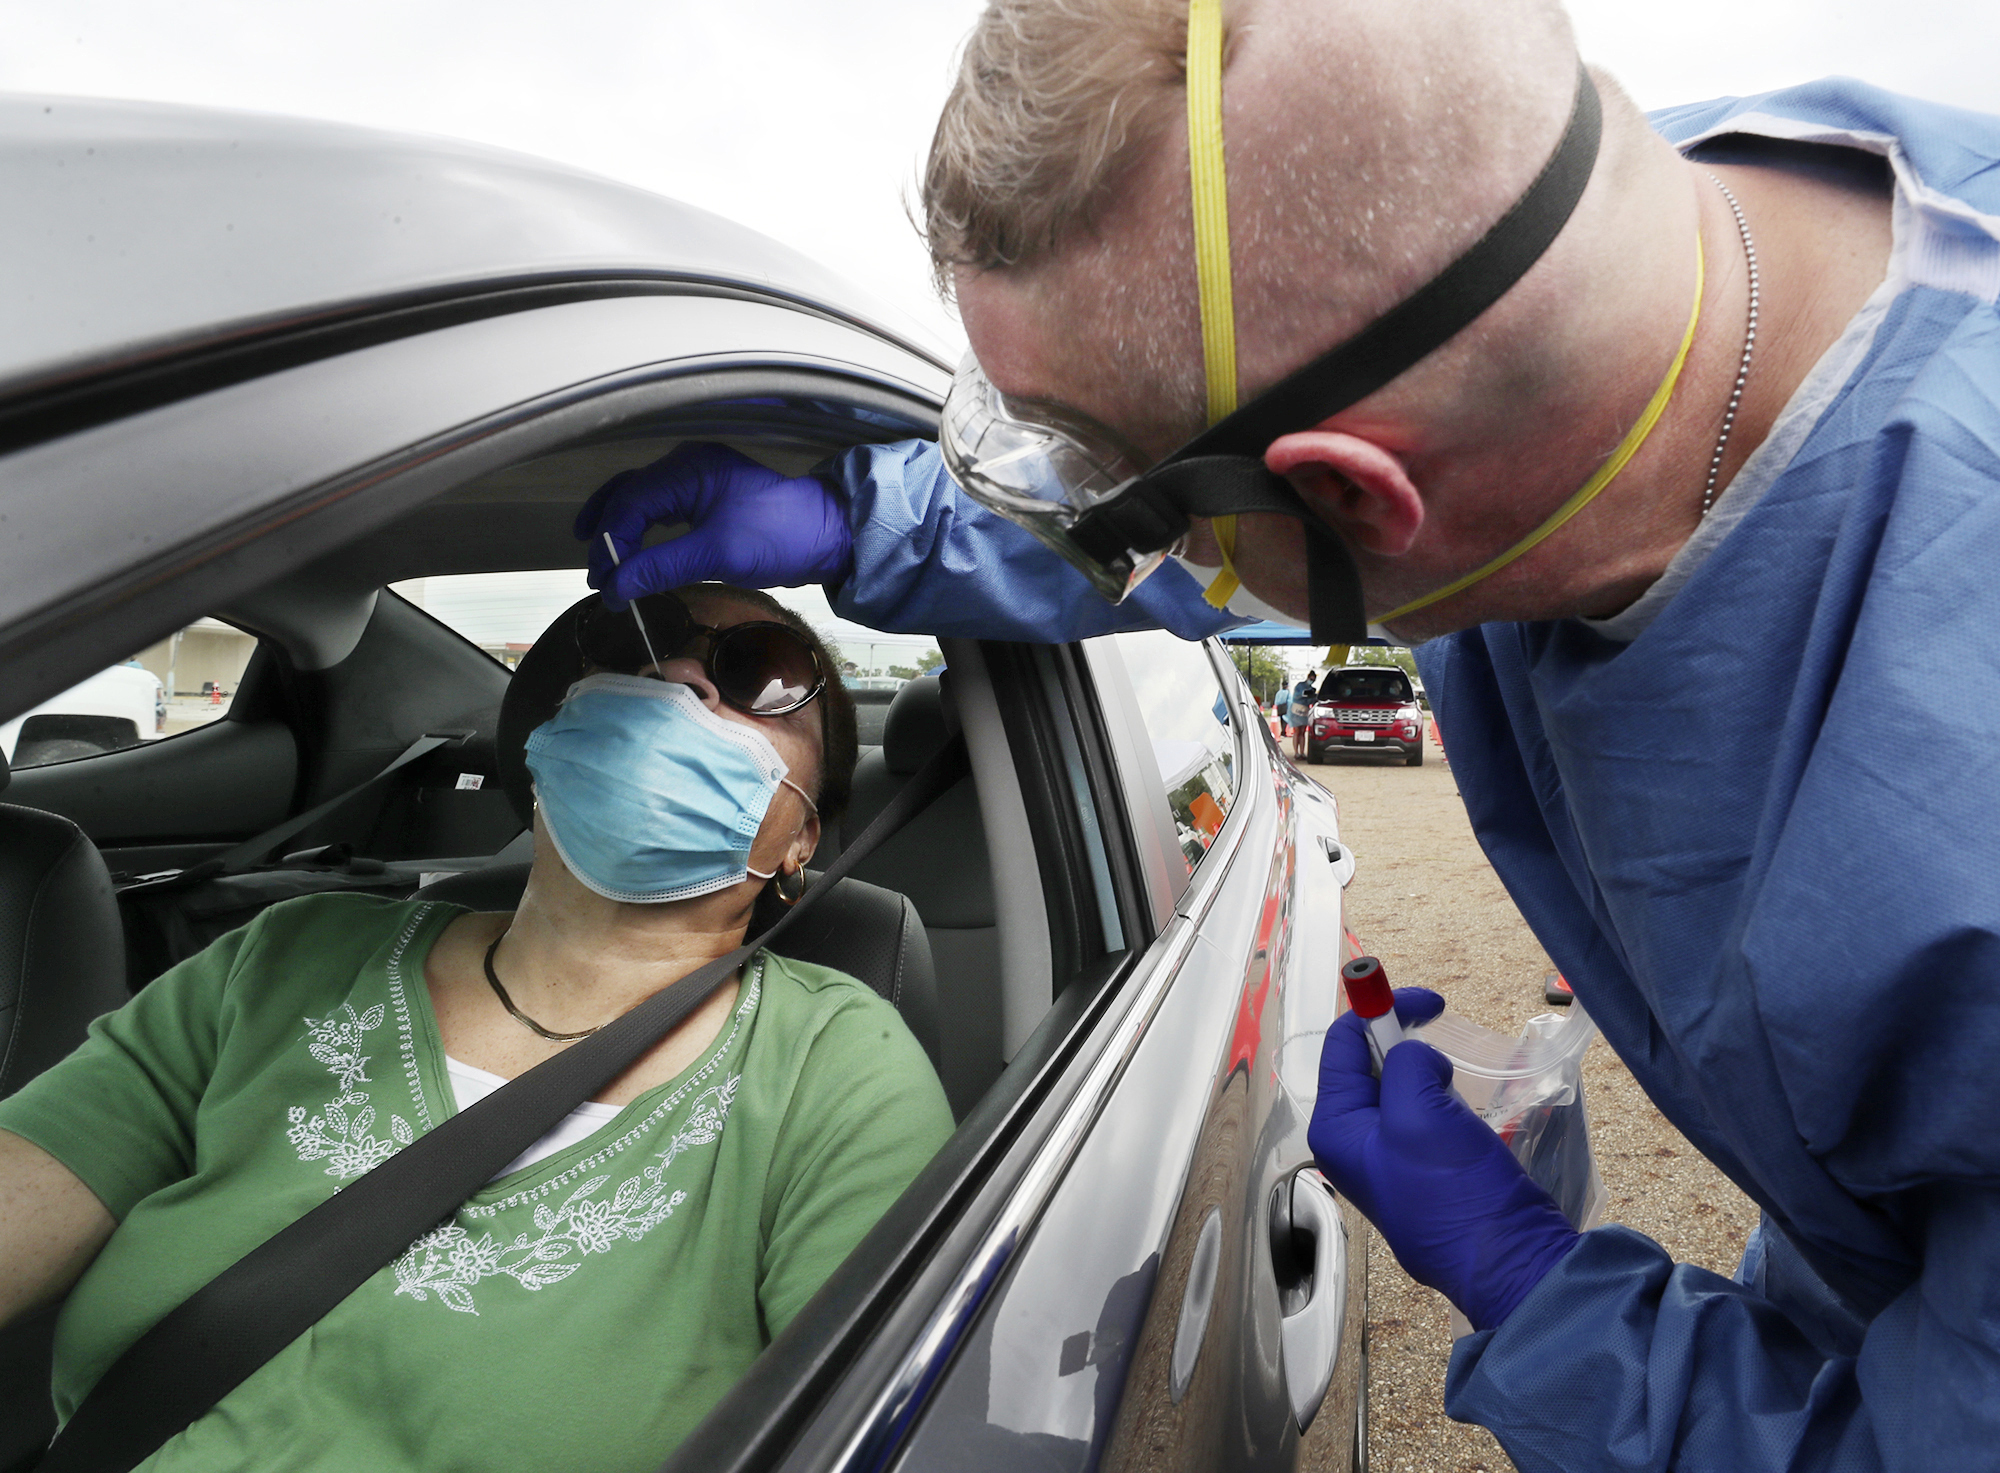 An Ohio National Guard Medic tests Elizabeth England in her car at a Summit County Department of Health COVID-19 testing site at Chapel Hill Mall on Saturday, Sept. 12, 2020, in Akron, Ohio. Hospitals around the United States are starting to buckle from a resurgence of COVID-19 cases, with several states setting records for the number of people hospitalized and leaders scrambling to find extra beds and staff. New highs in cases have been reported in states big and small, from Idaho to Ohio. (Mike Cardew/Akron Beacon Journal via AP)